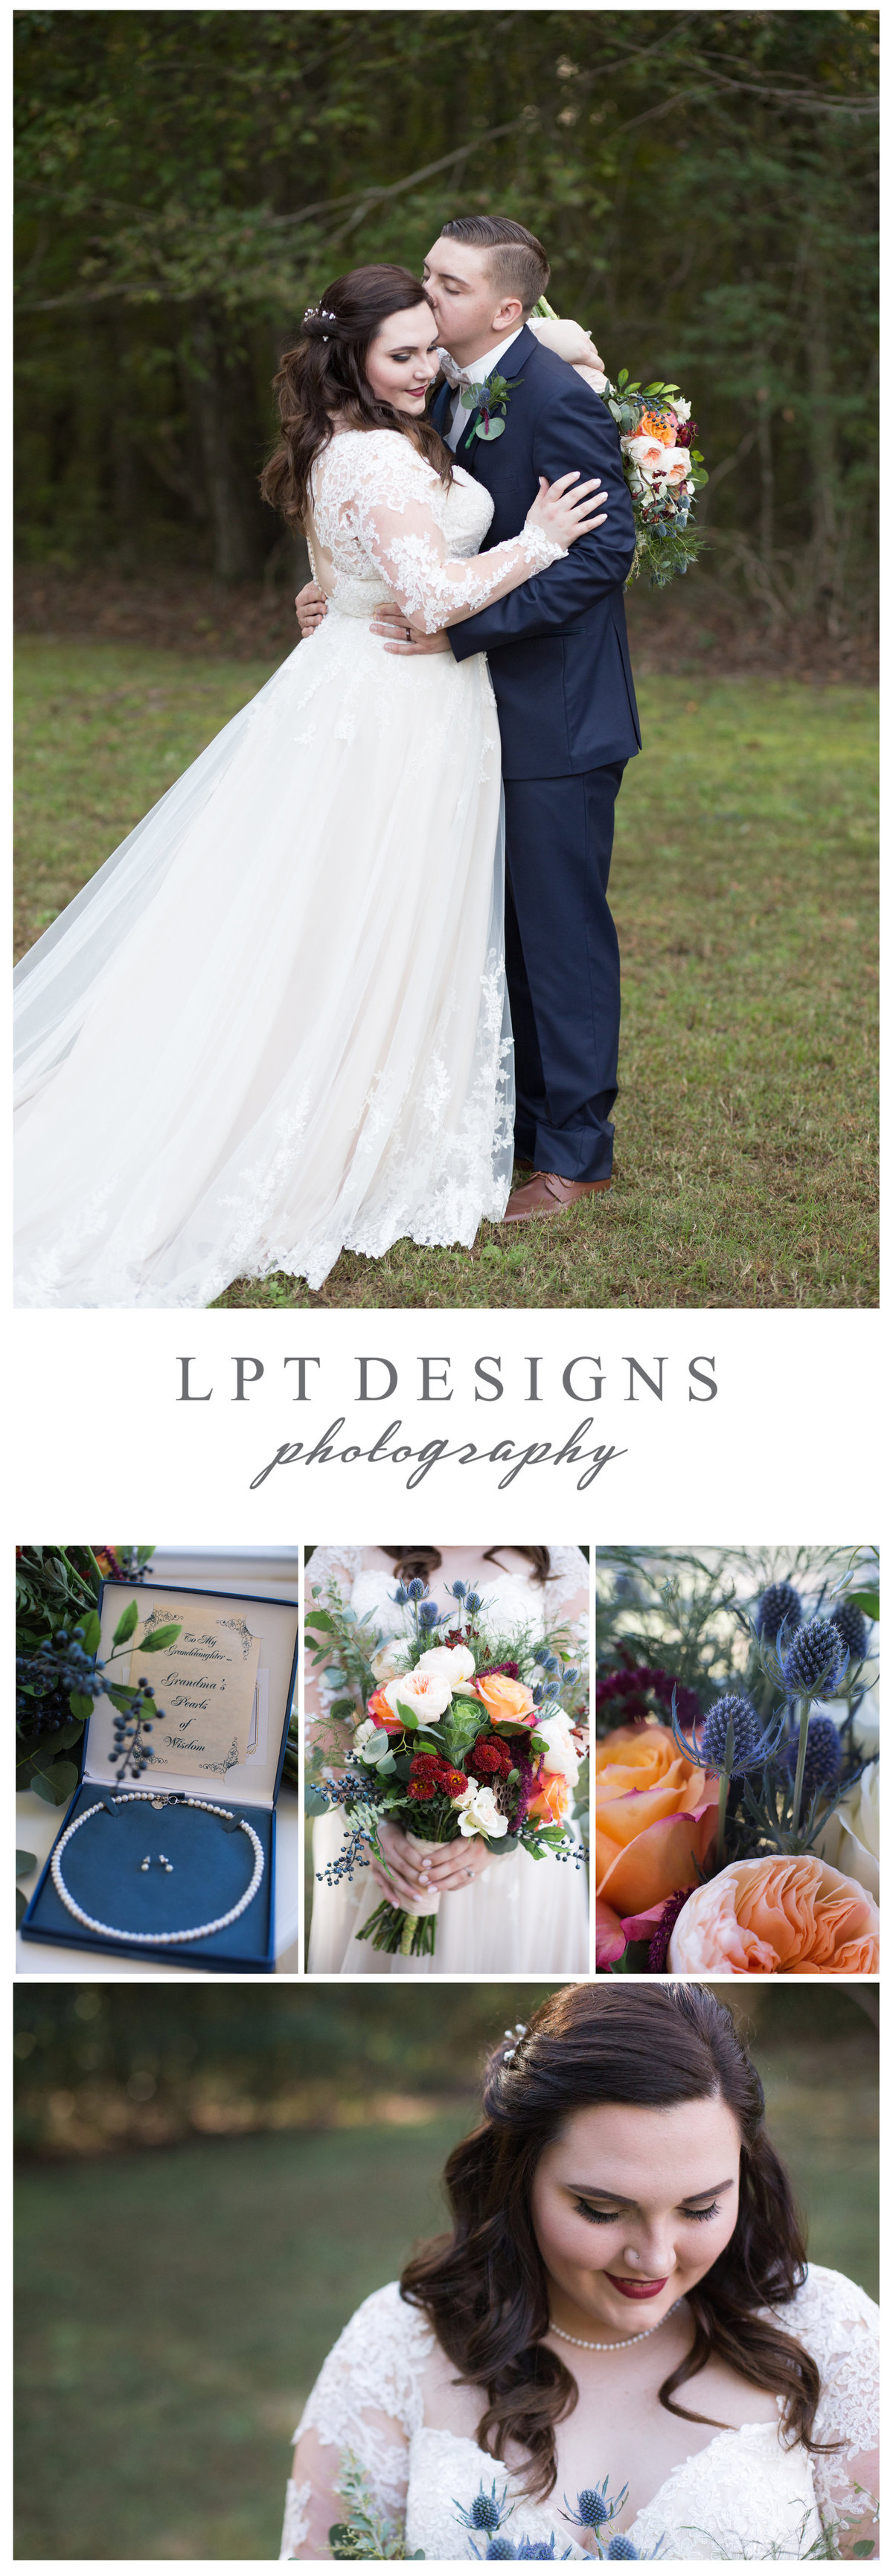 LPT Designs Photography Lydia Thrift Gadsden Alabama Fine Art Wedding Photographer LJ 2